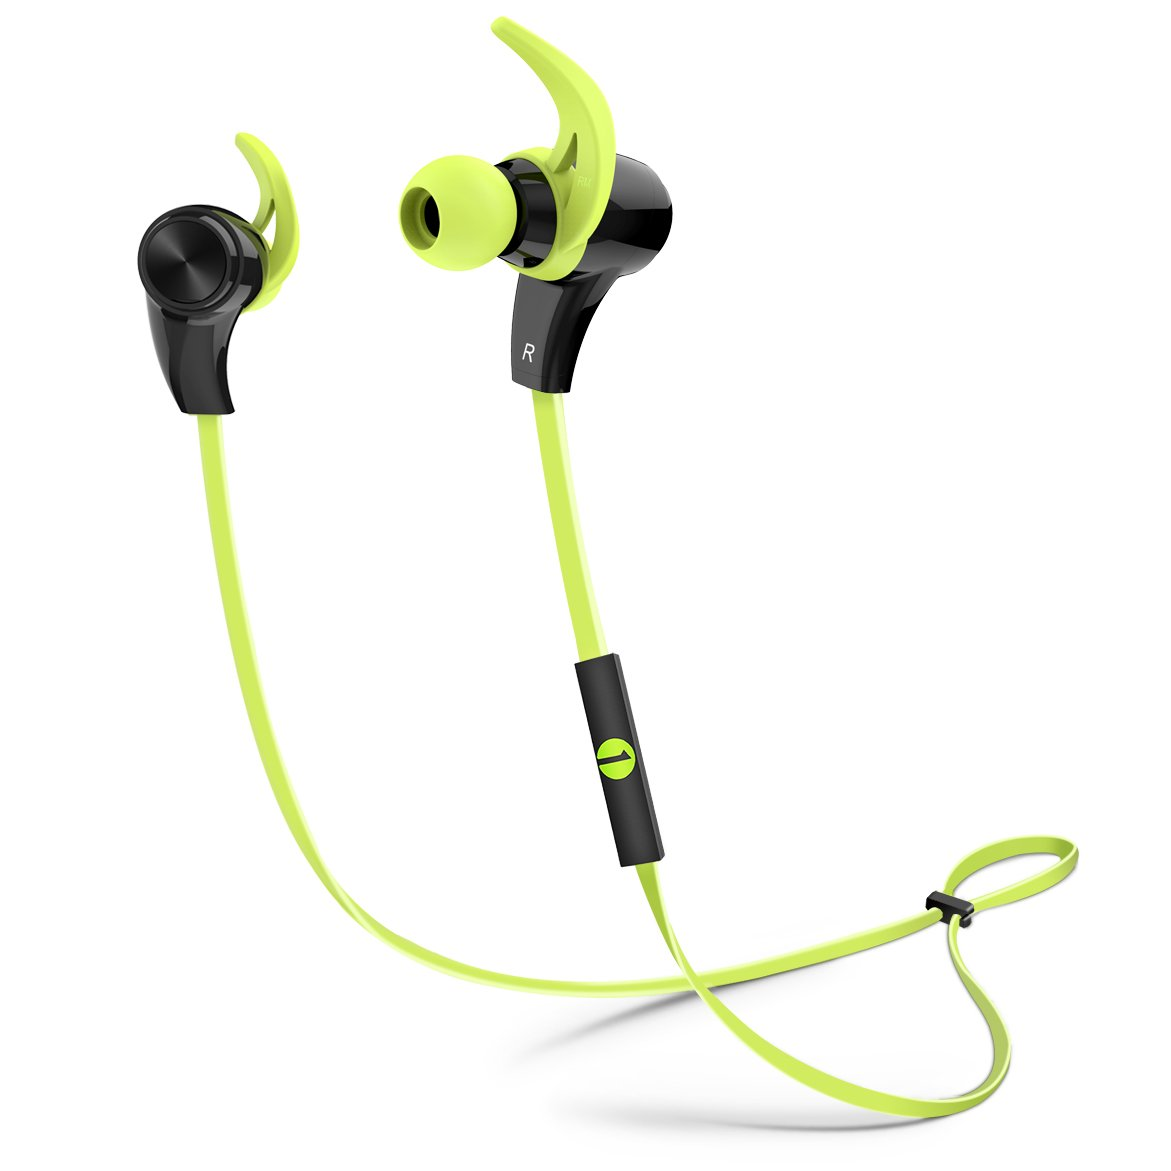 1byone Bluetooth In Ear headphones for workout